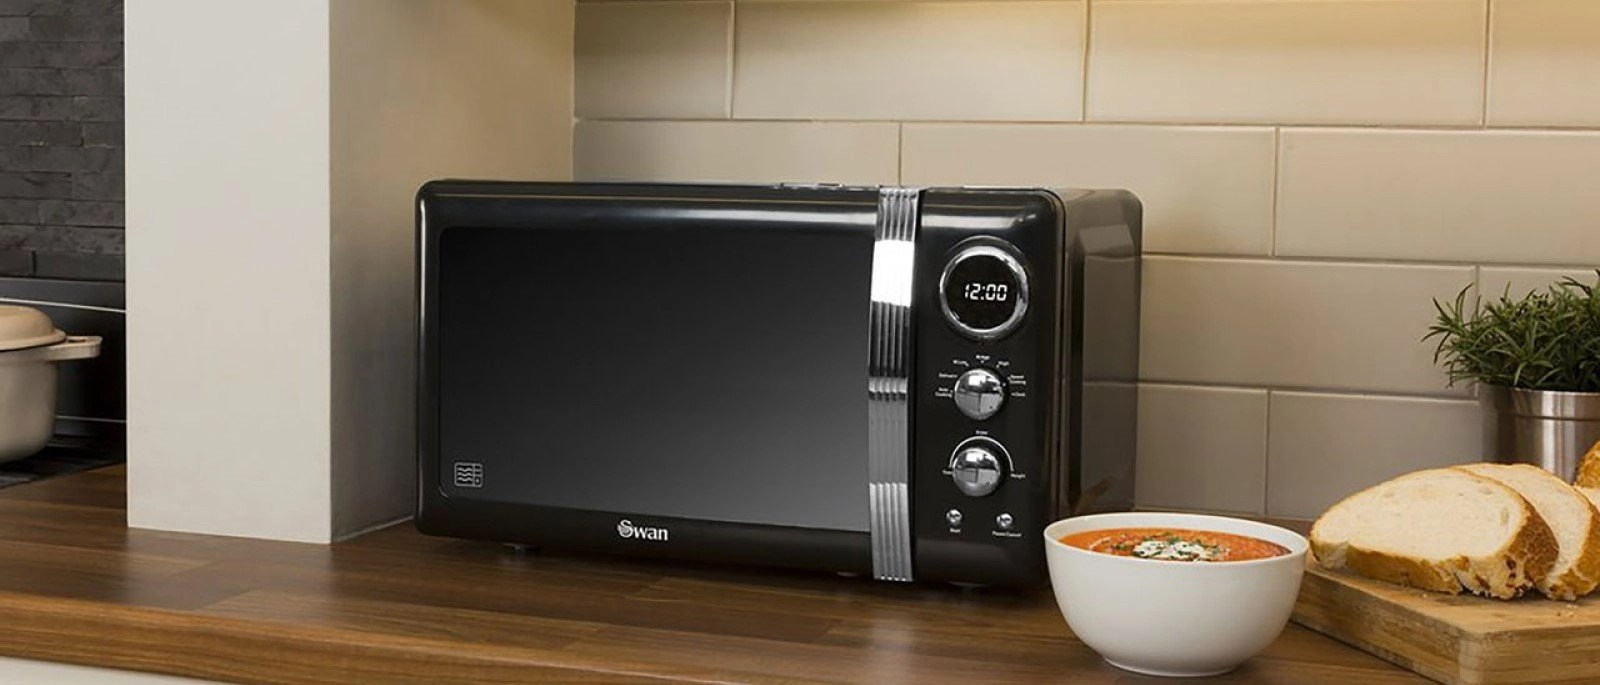 best retro microwaves review for 2021